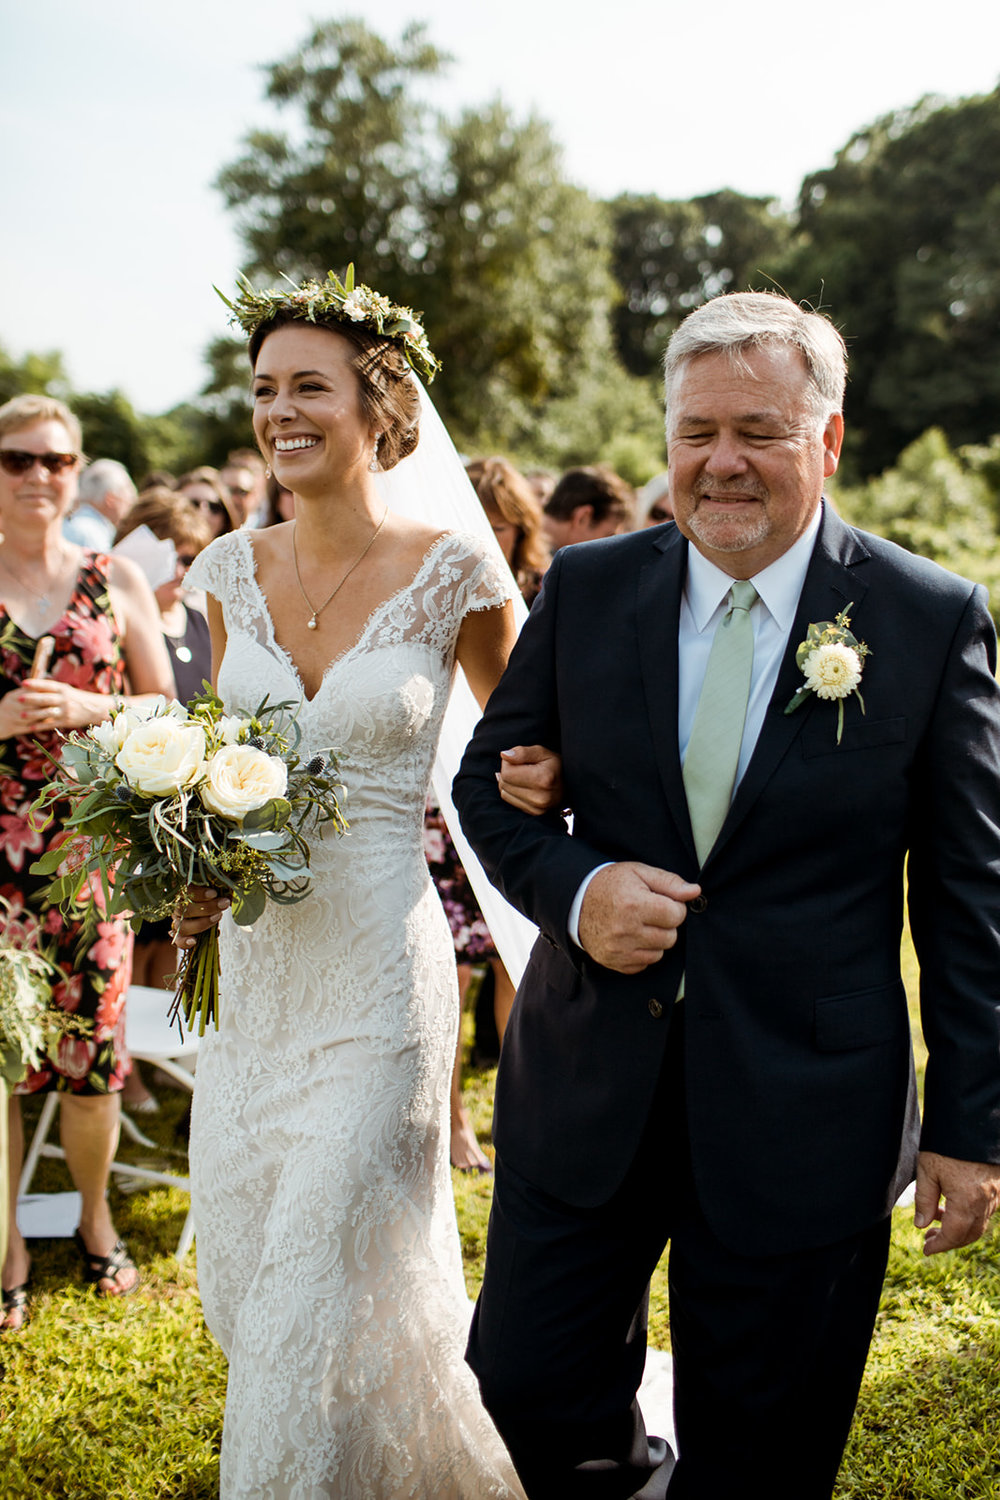 Bride and her father walking down the aisle in Chester, Connecticut with a floral crown - Pearl Weddings & Events